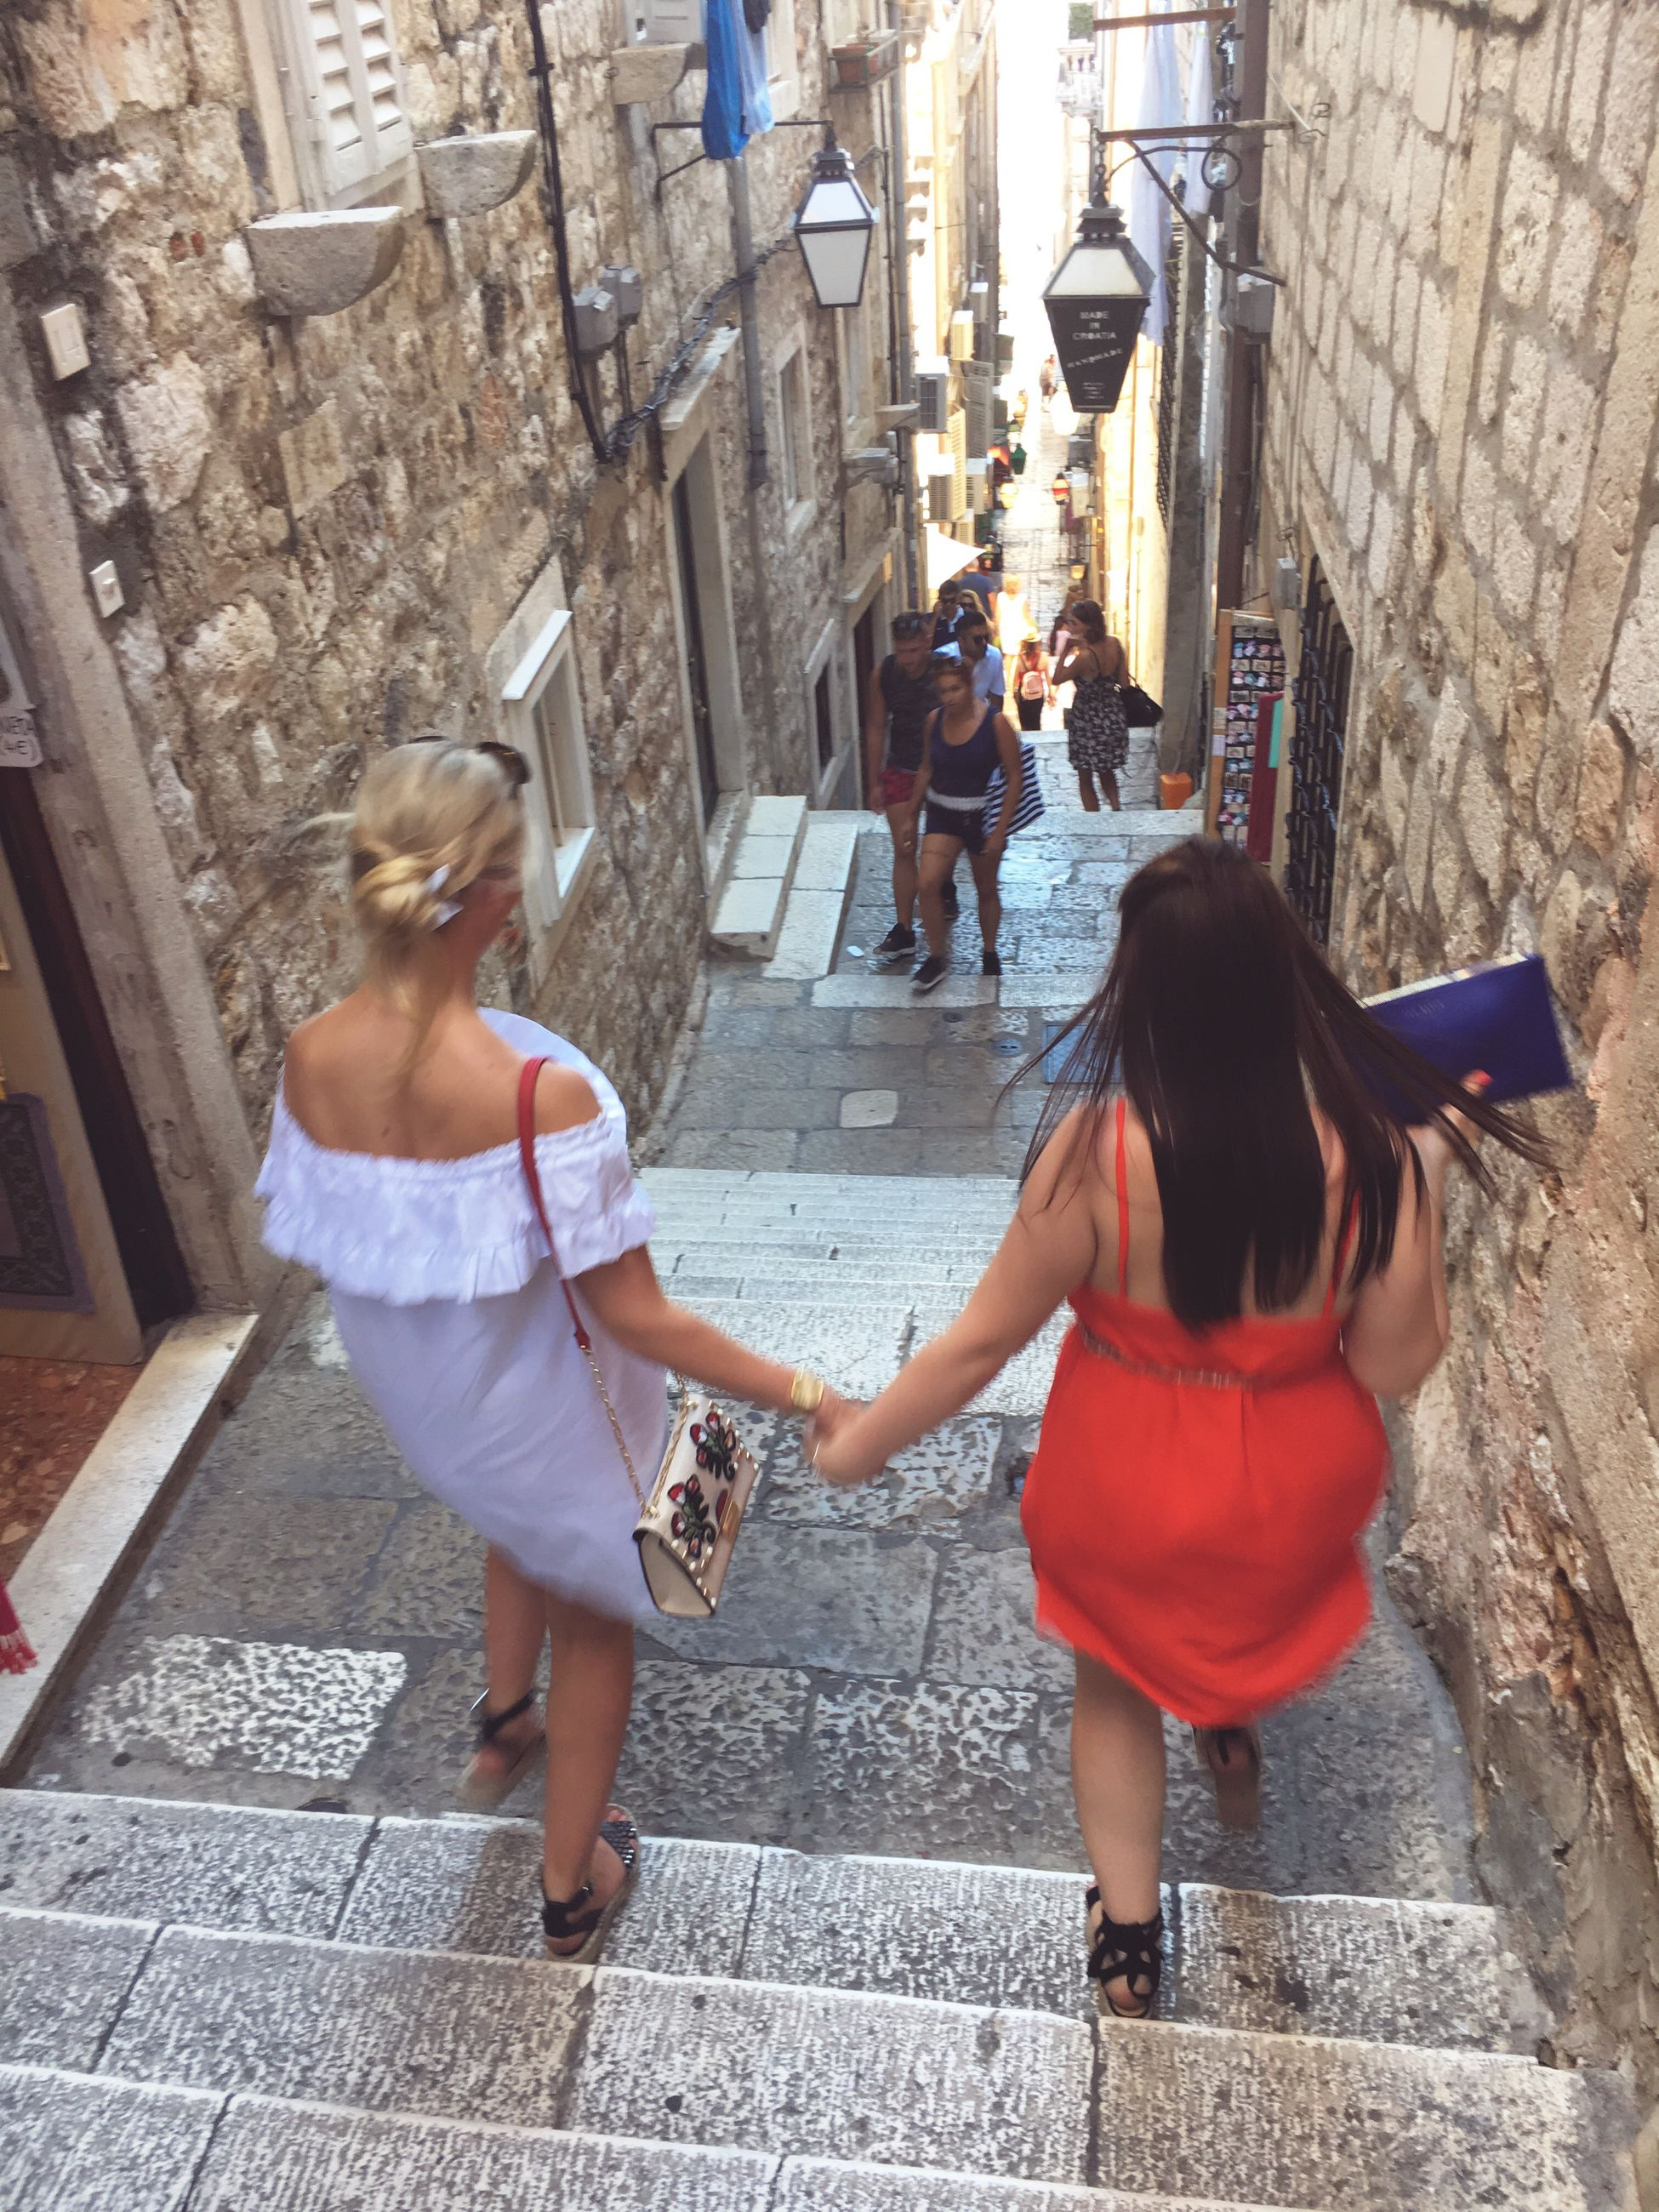 real people, architecture, built structure, building exterior, steps, lifestyles, steps and staircases, walking, full length, two people, staircase, casual clothing, street, outdoors, leisure activity, women, togetherness, day, city, men, people